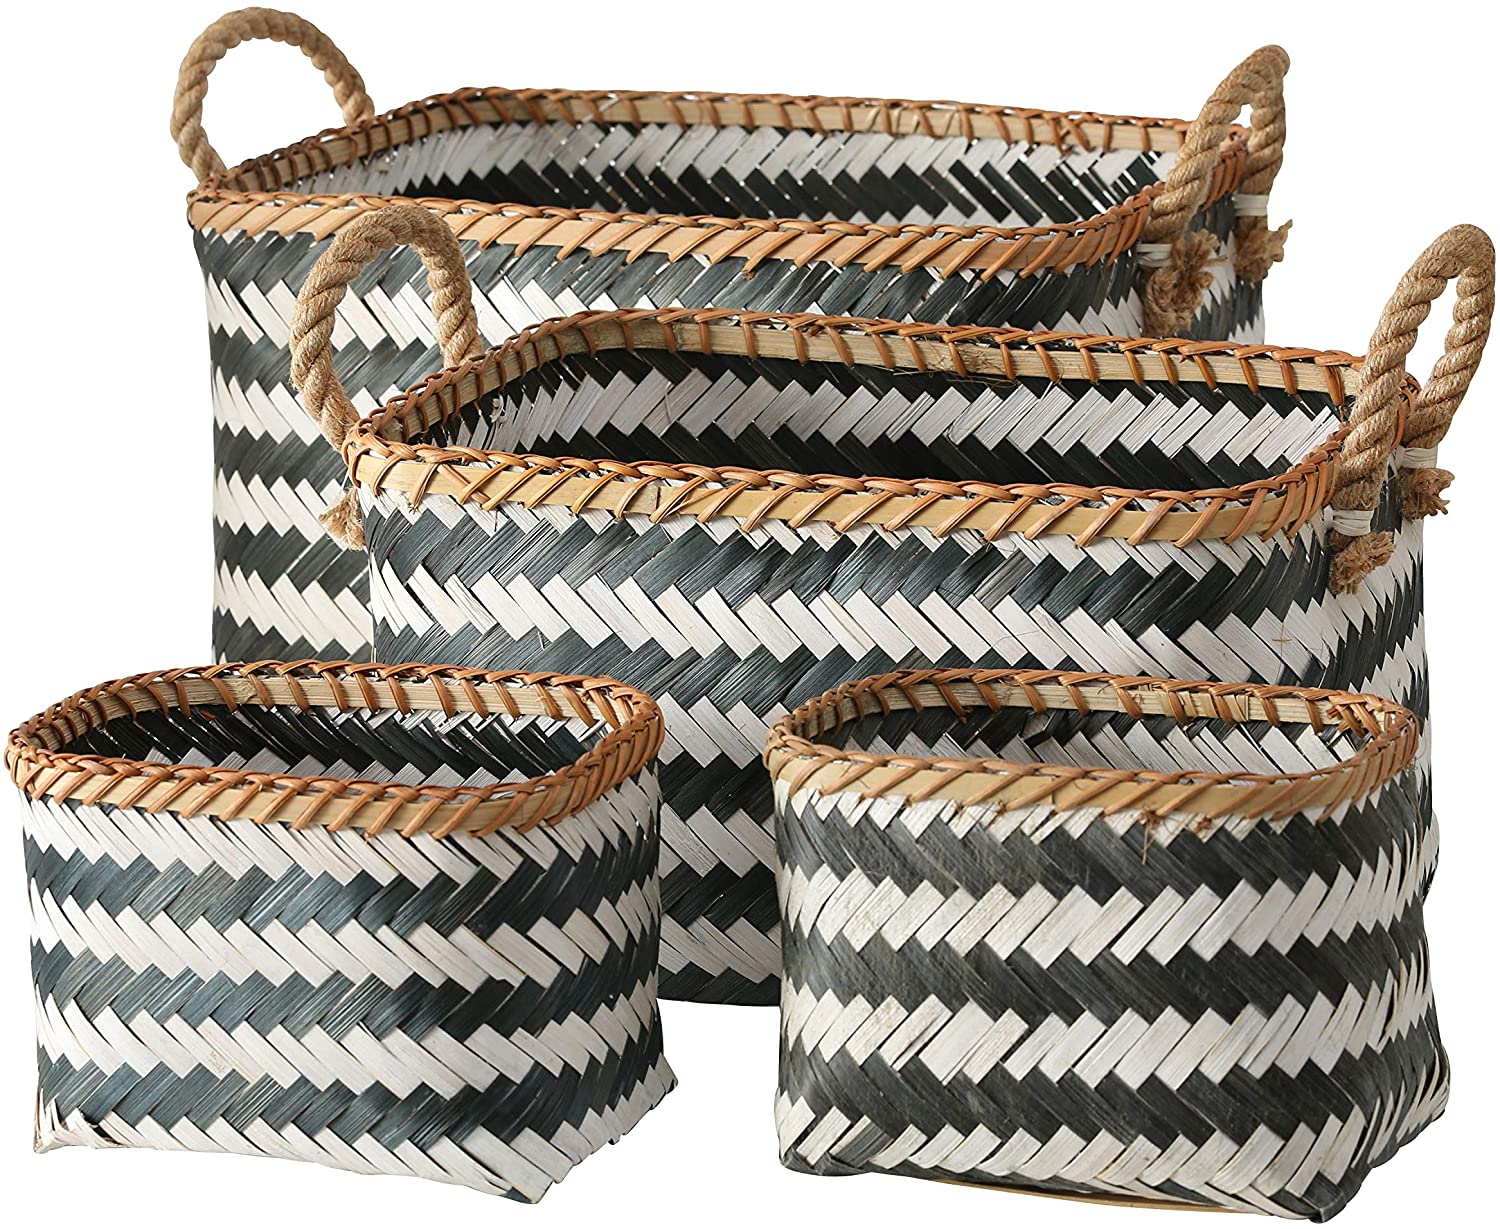 WHW Whole House Worlds Black and White Organizer Baskets, 4 Piece Set, Rectangular, Rustic, Natural Rope Side Handles, Bamboo Wicker Weave, Various Sizes 17, 15 and 8 3/4 Inches Long